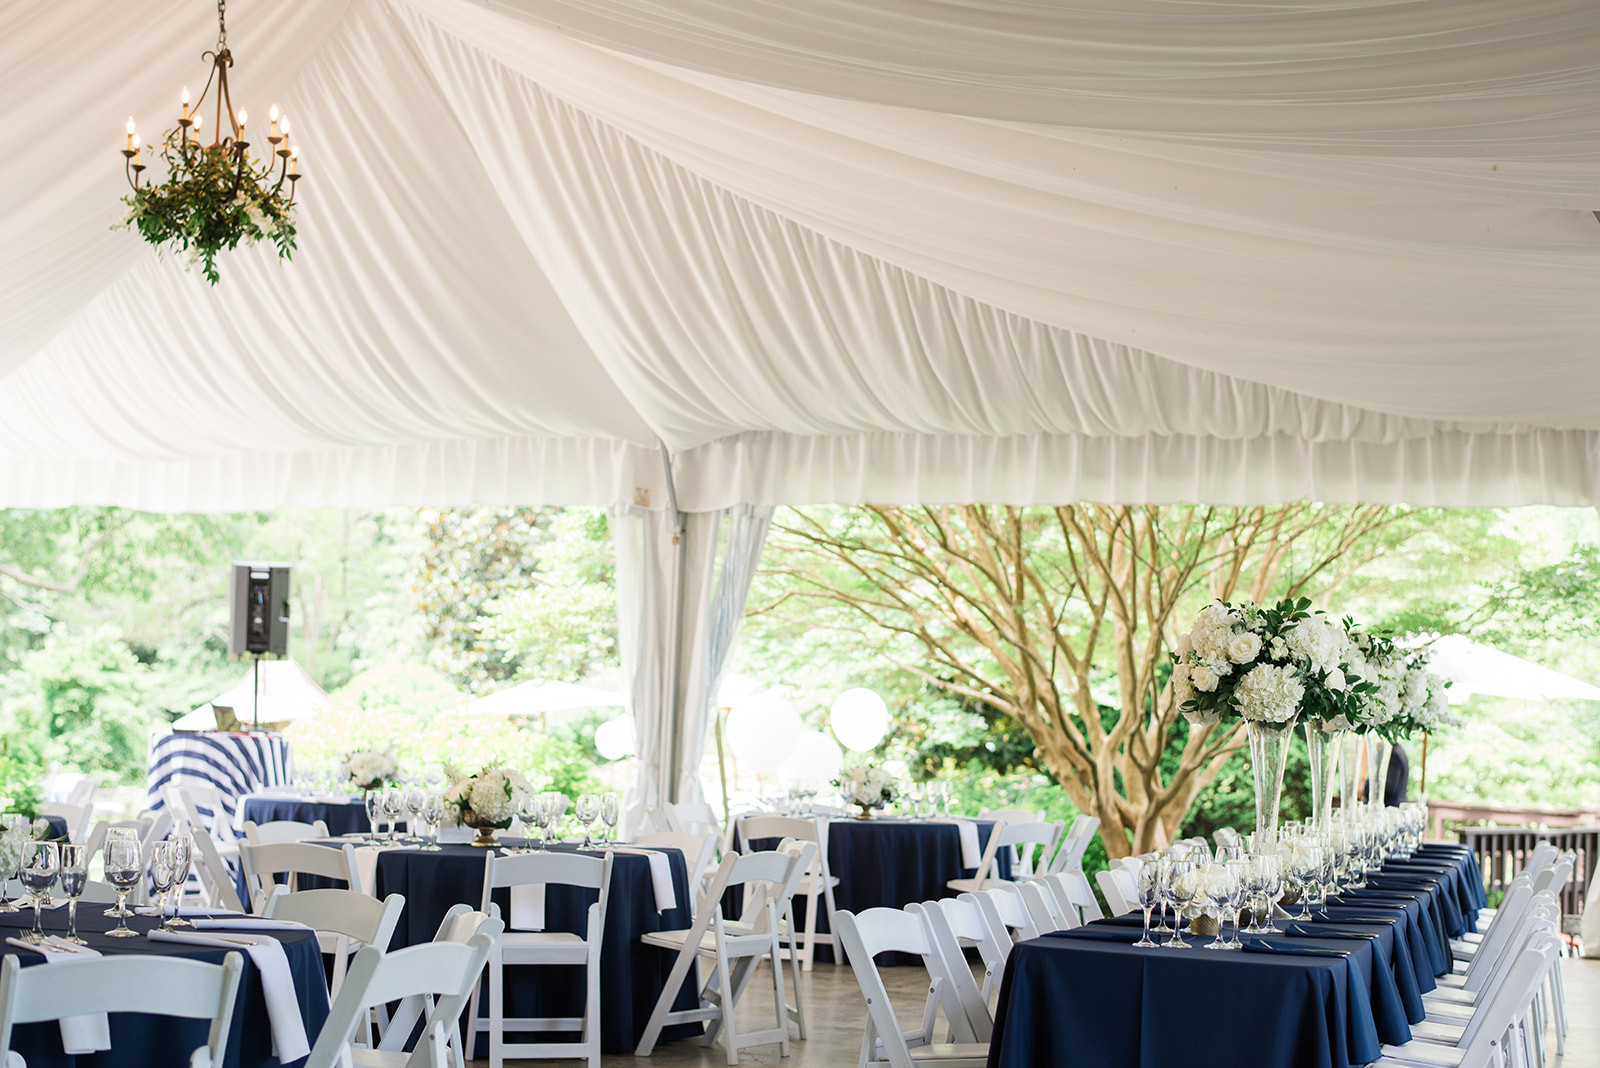 Samara-Alex-Tent-Design-Charming-Grace-E